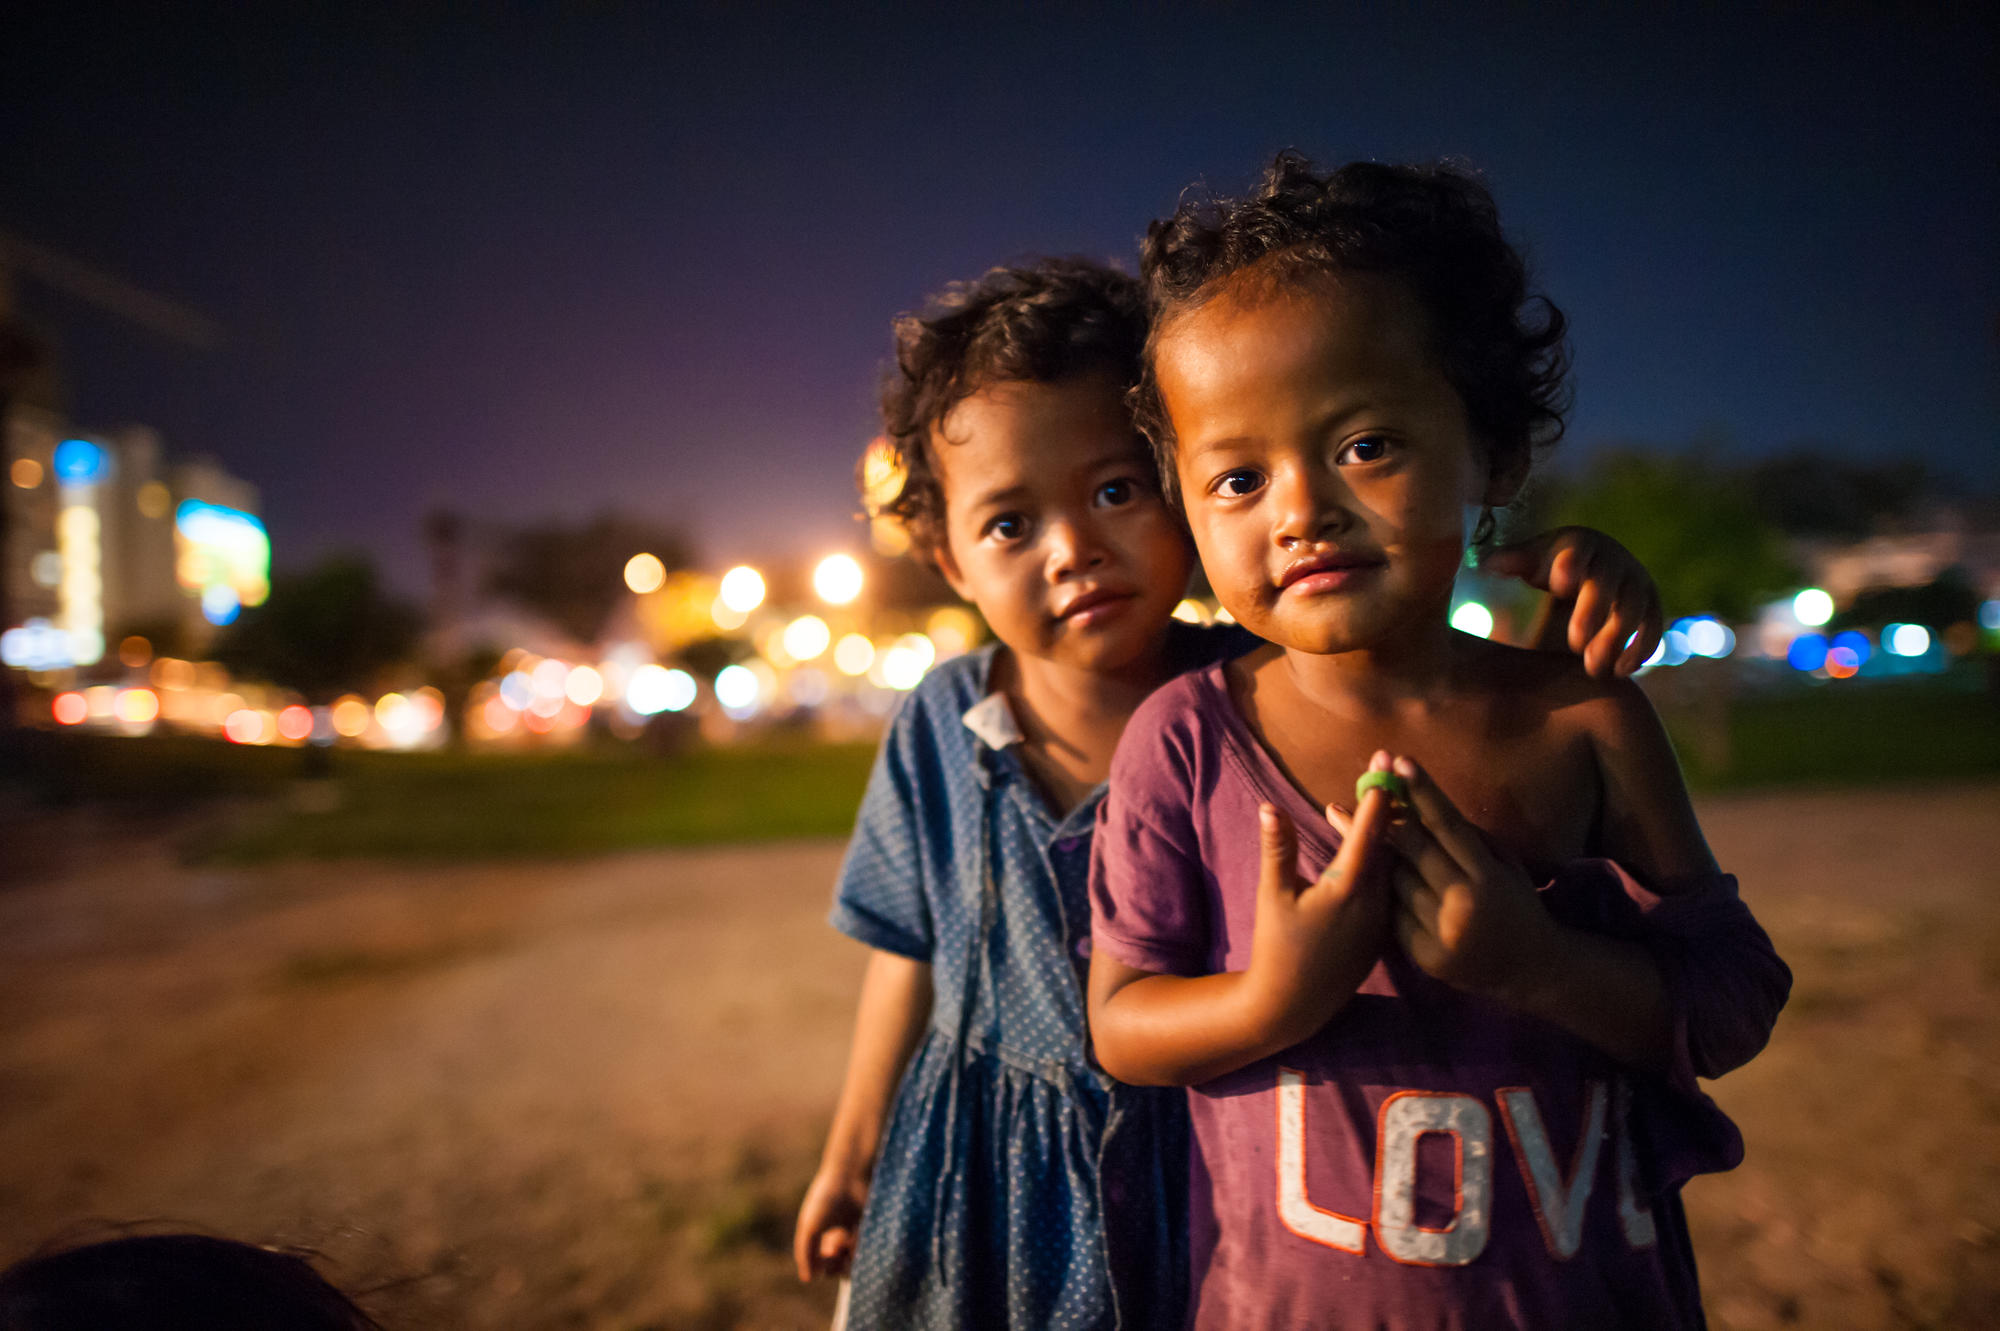 Two young Khmer children stand in the street